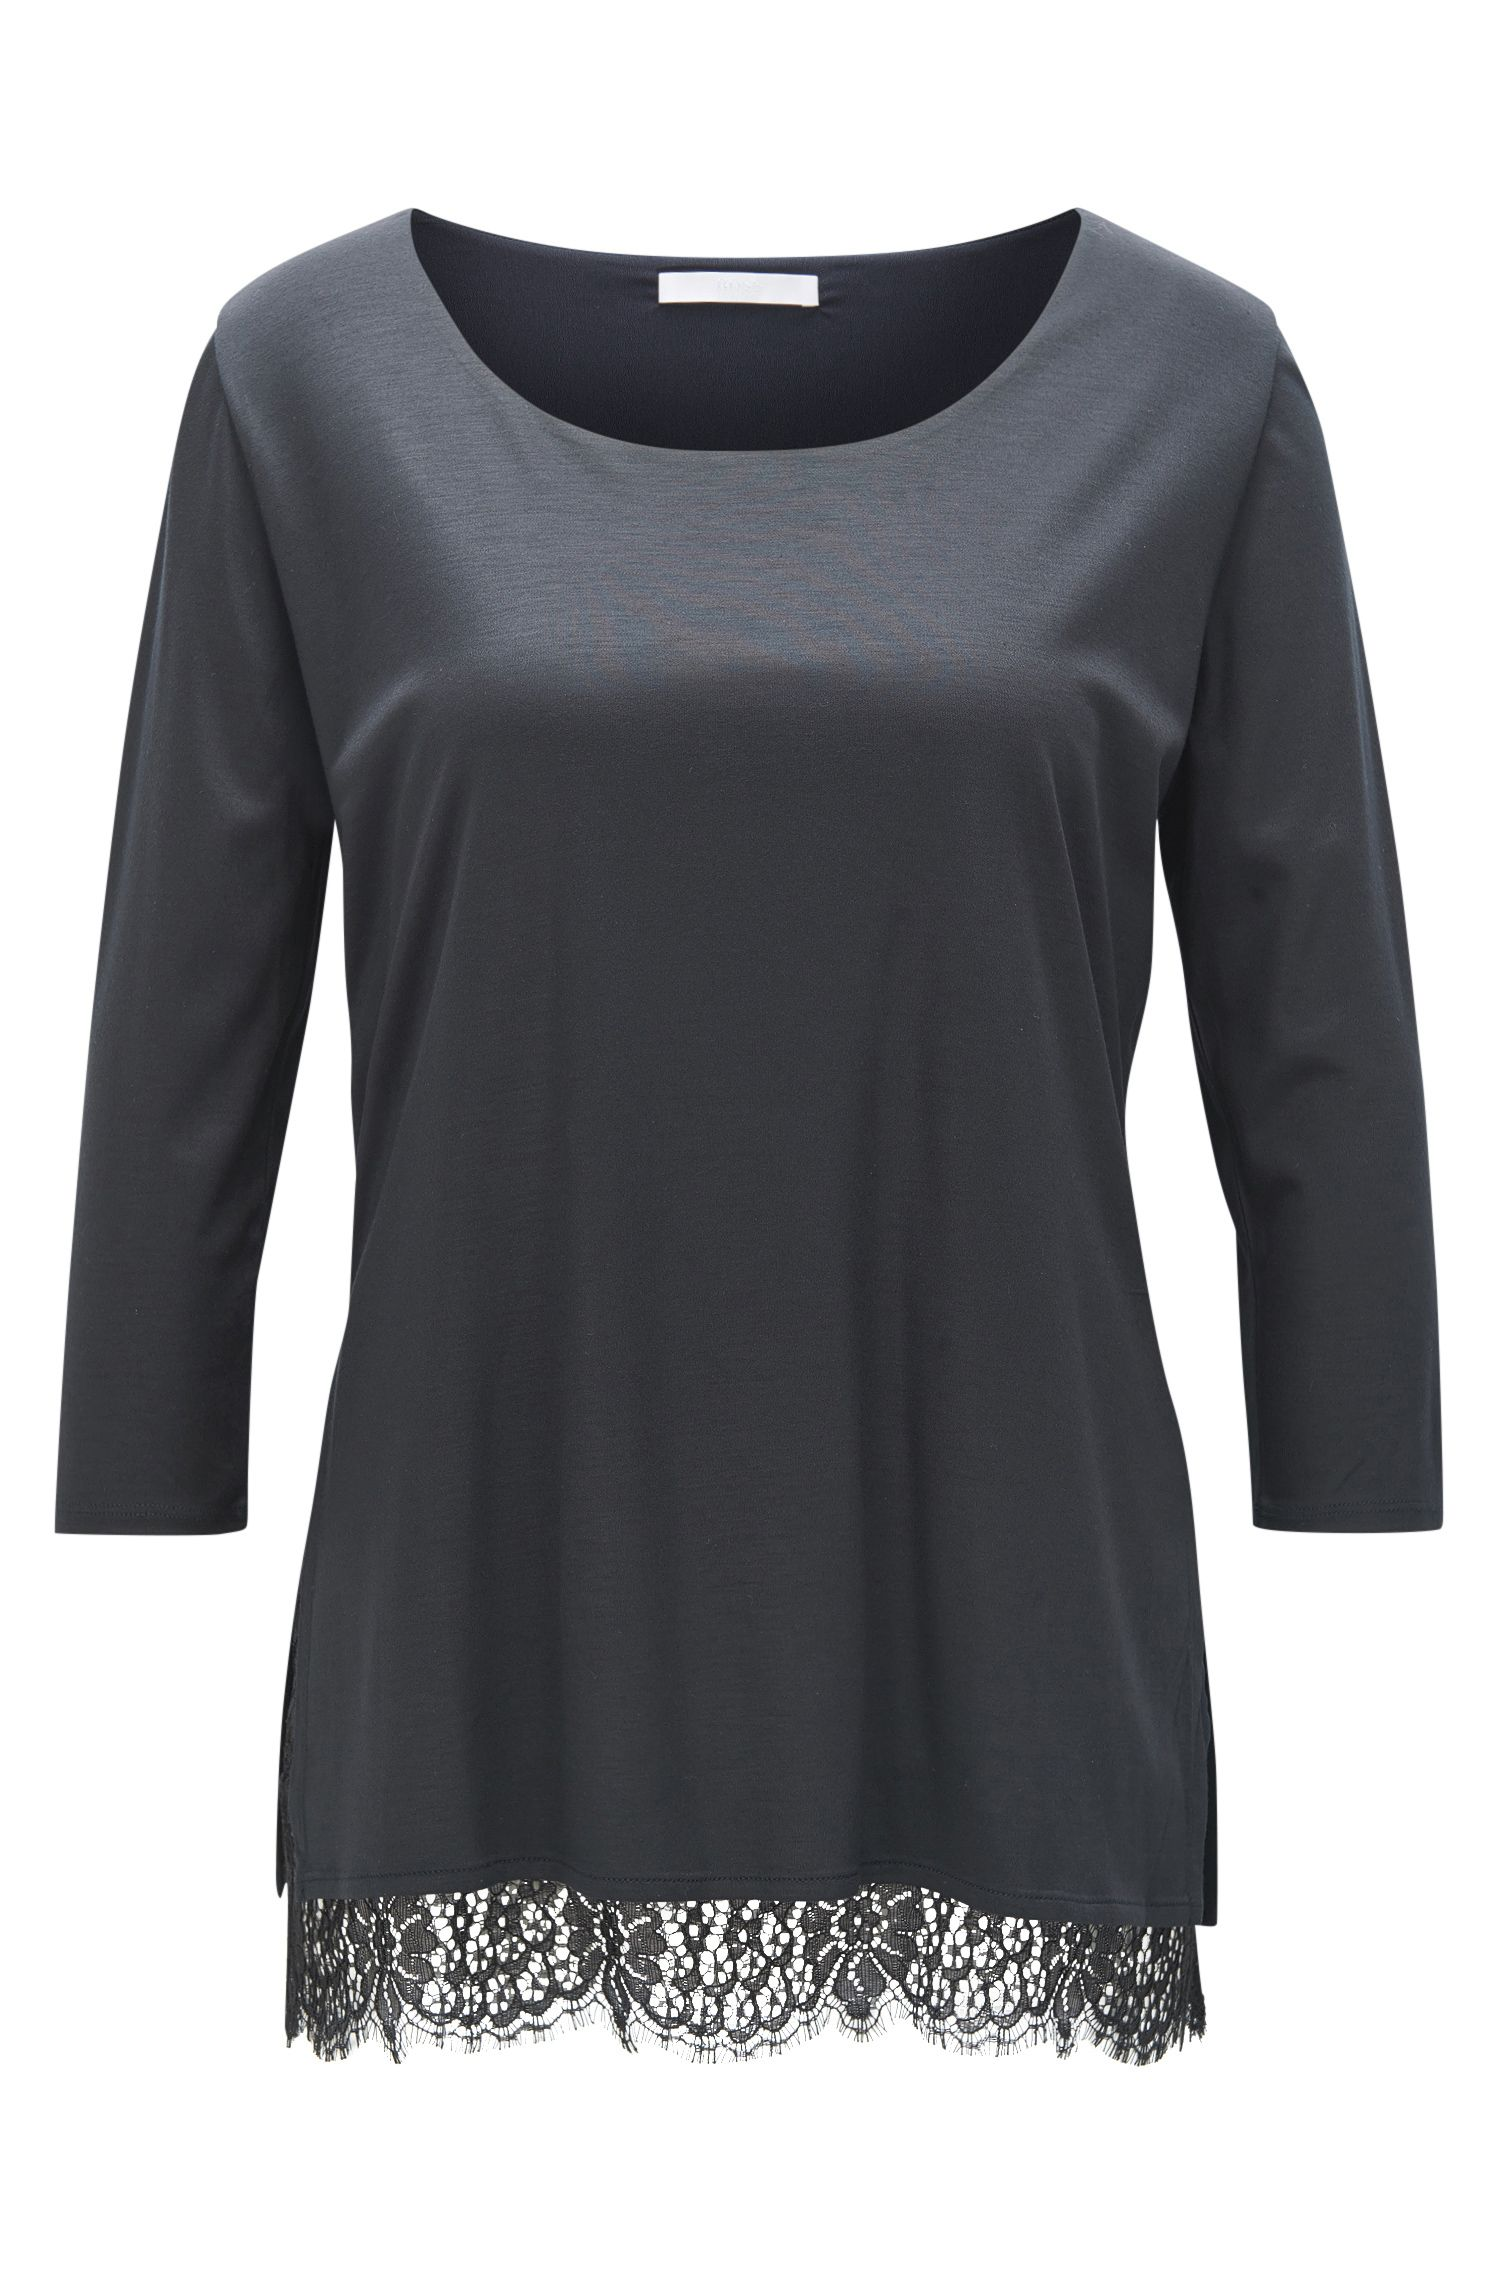 Regular-Fit Top aus weichem Modal